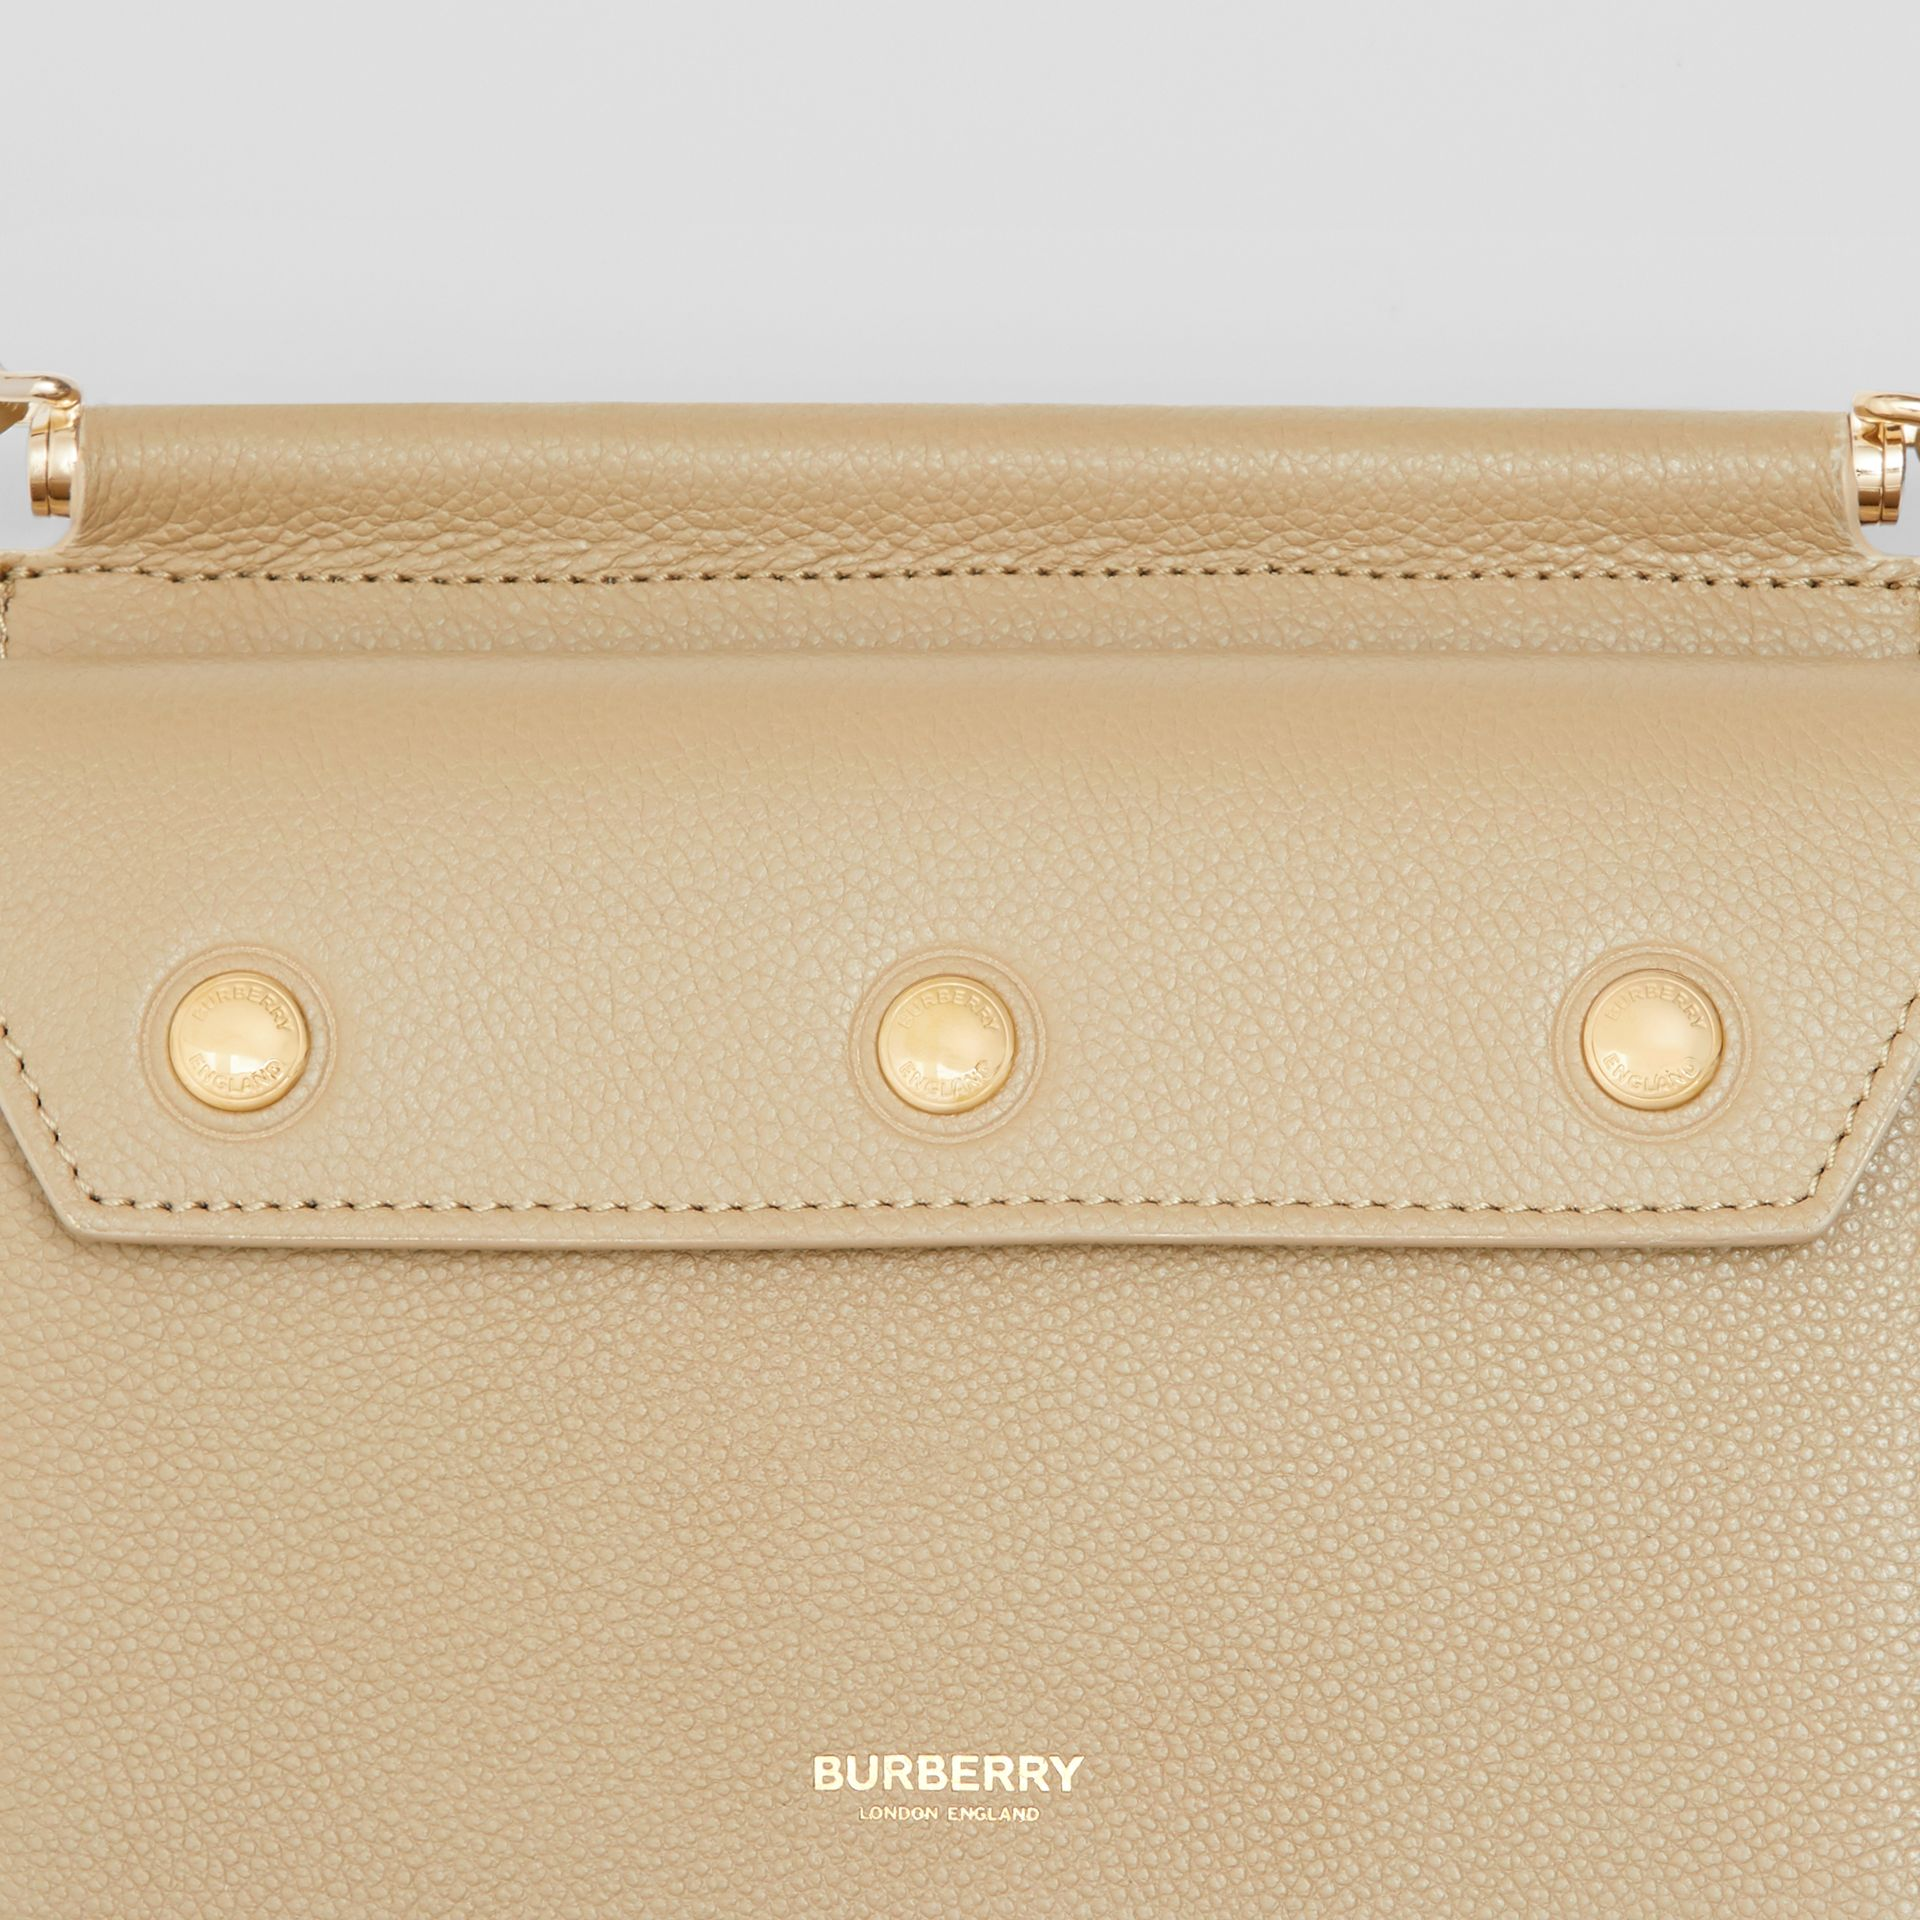 Mini Leather Title Bag with Pocket Detail in Honey - Women | Burberry Australia - gallery image 1